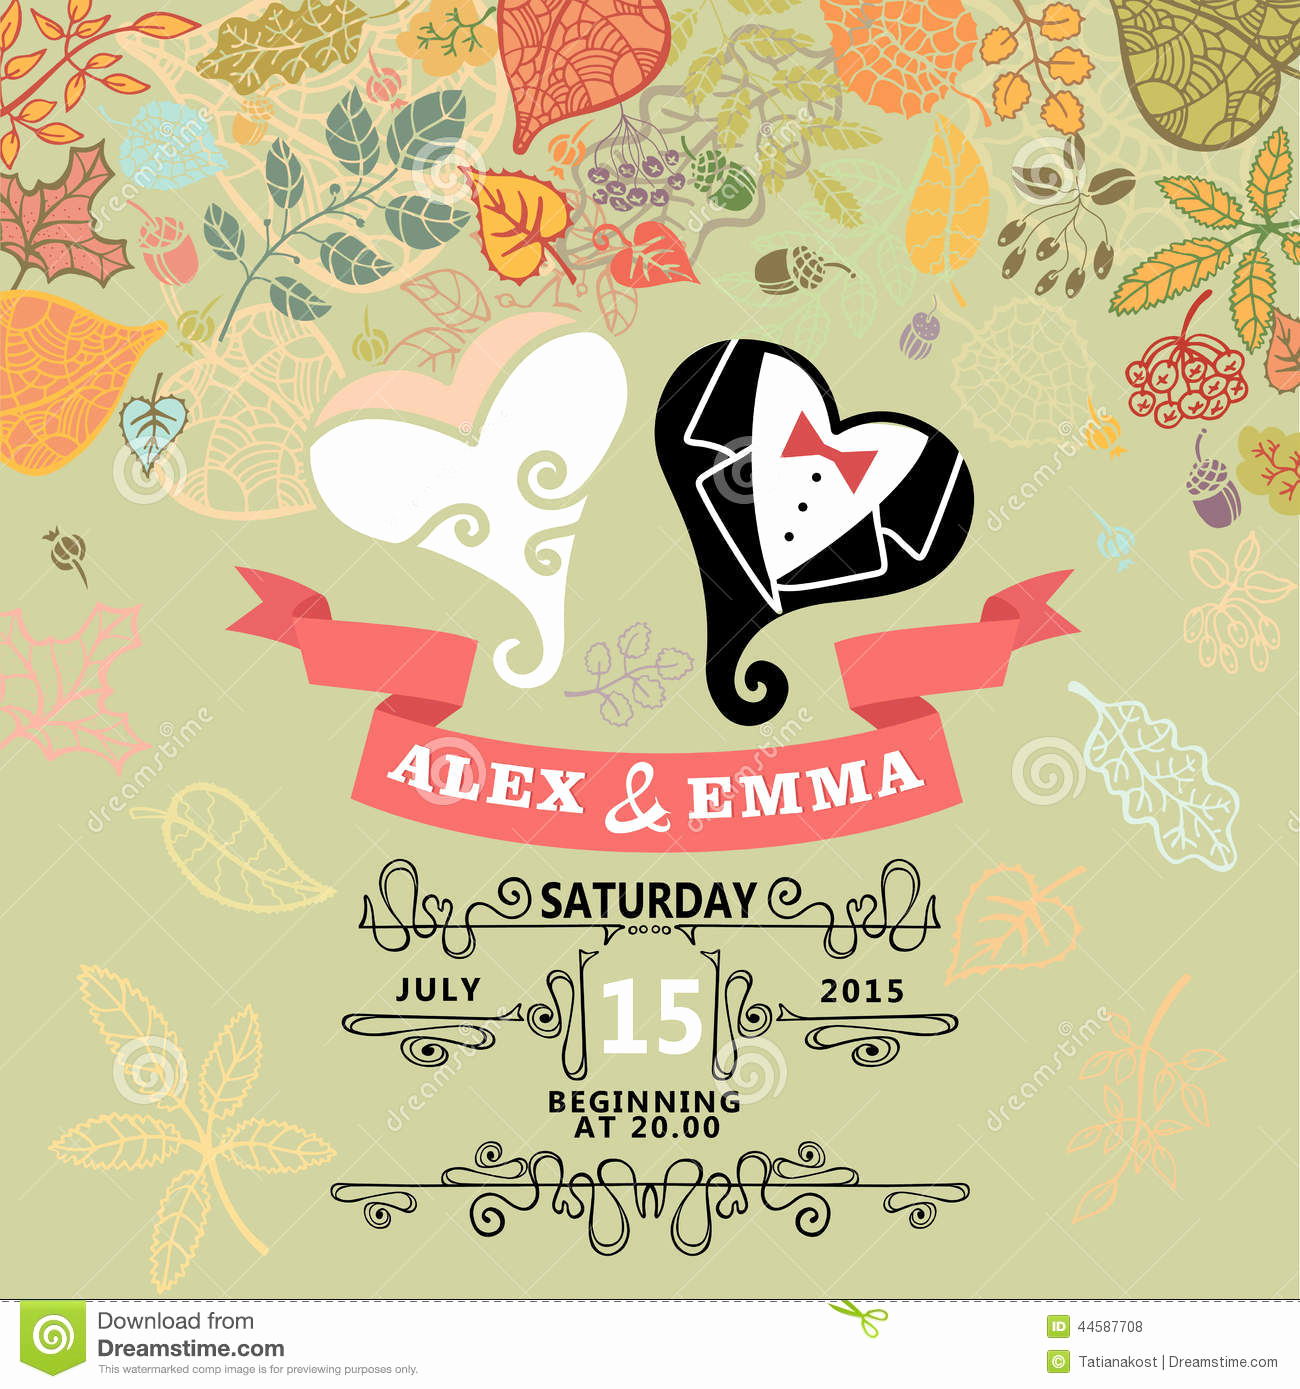 Cute Wedding Invitation Ideas Unique Cute Wedding Invitation with Stylized Heart Stock Vector